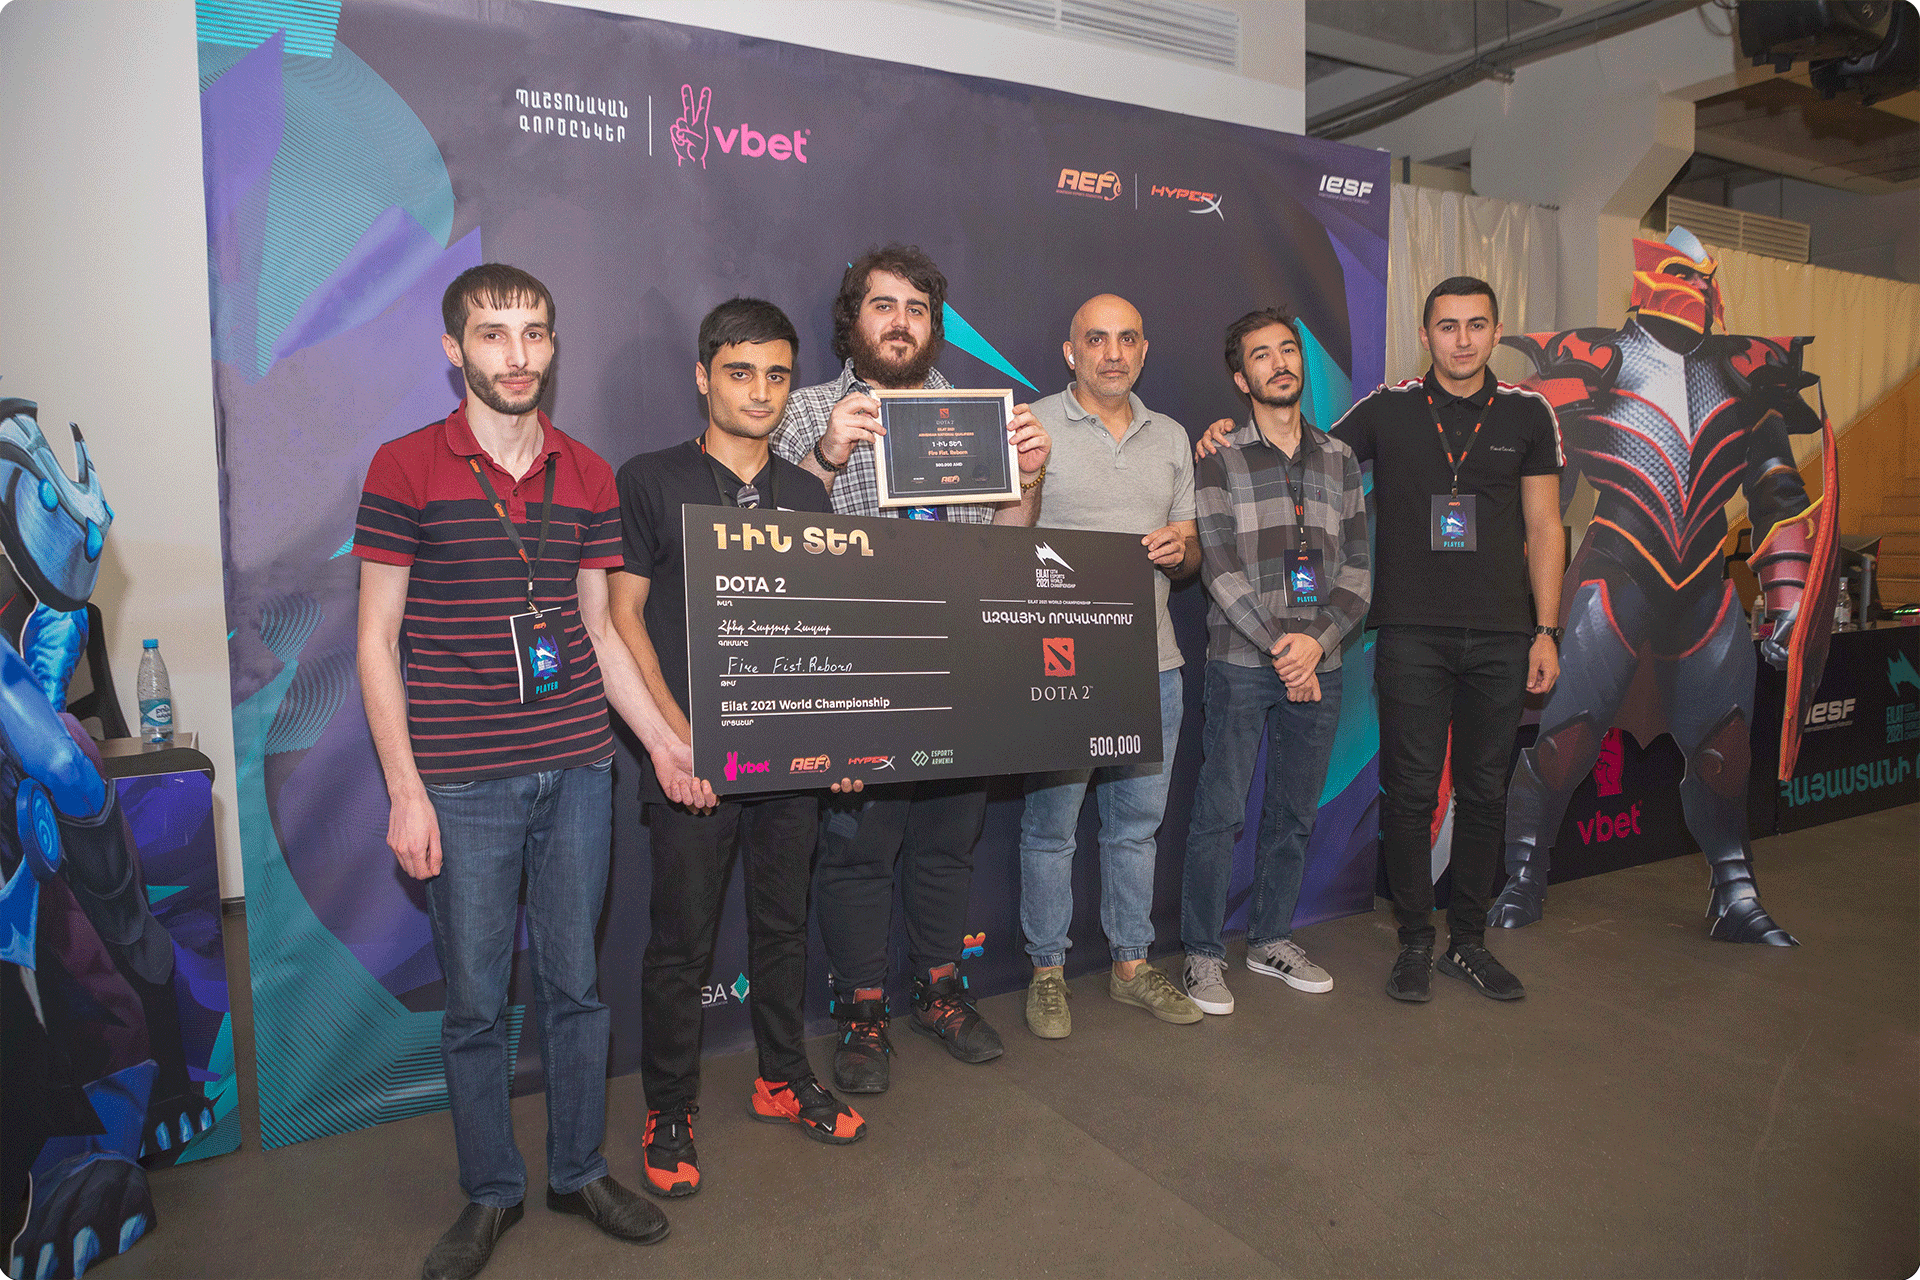 EILAT 2021 DOTA 2 National Qualifiers ended on August 7